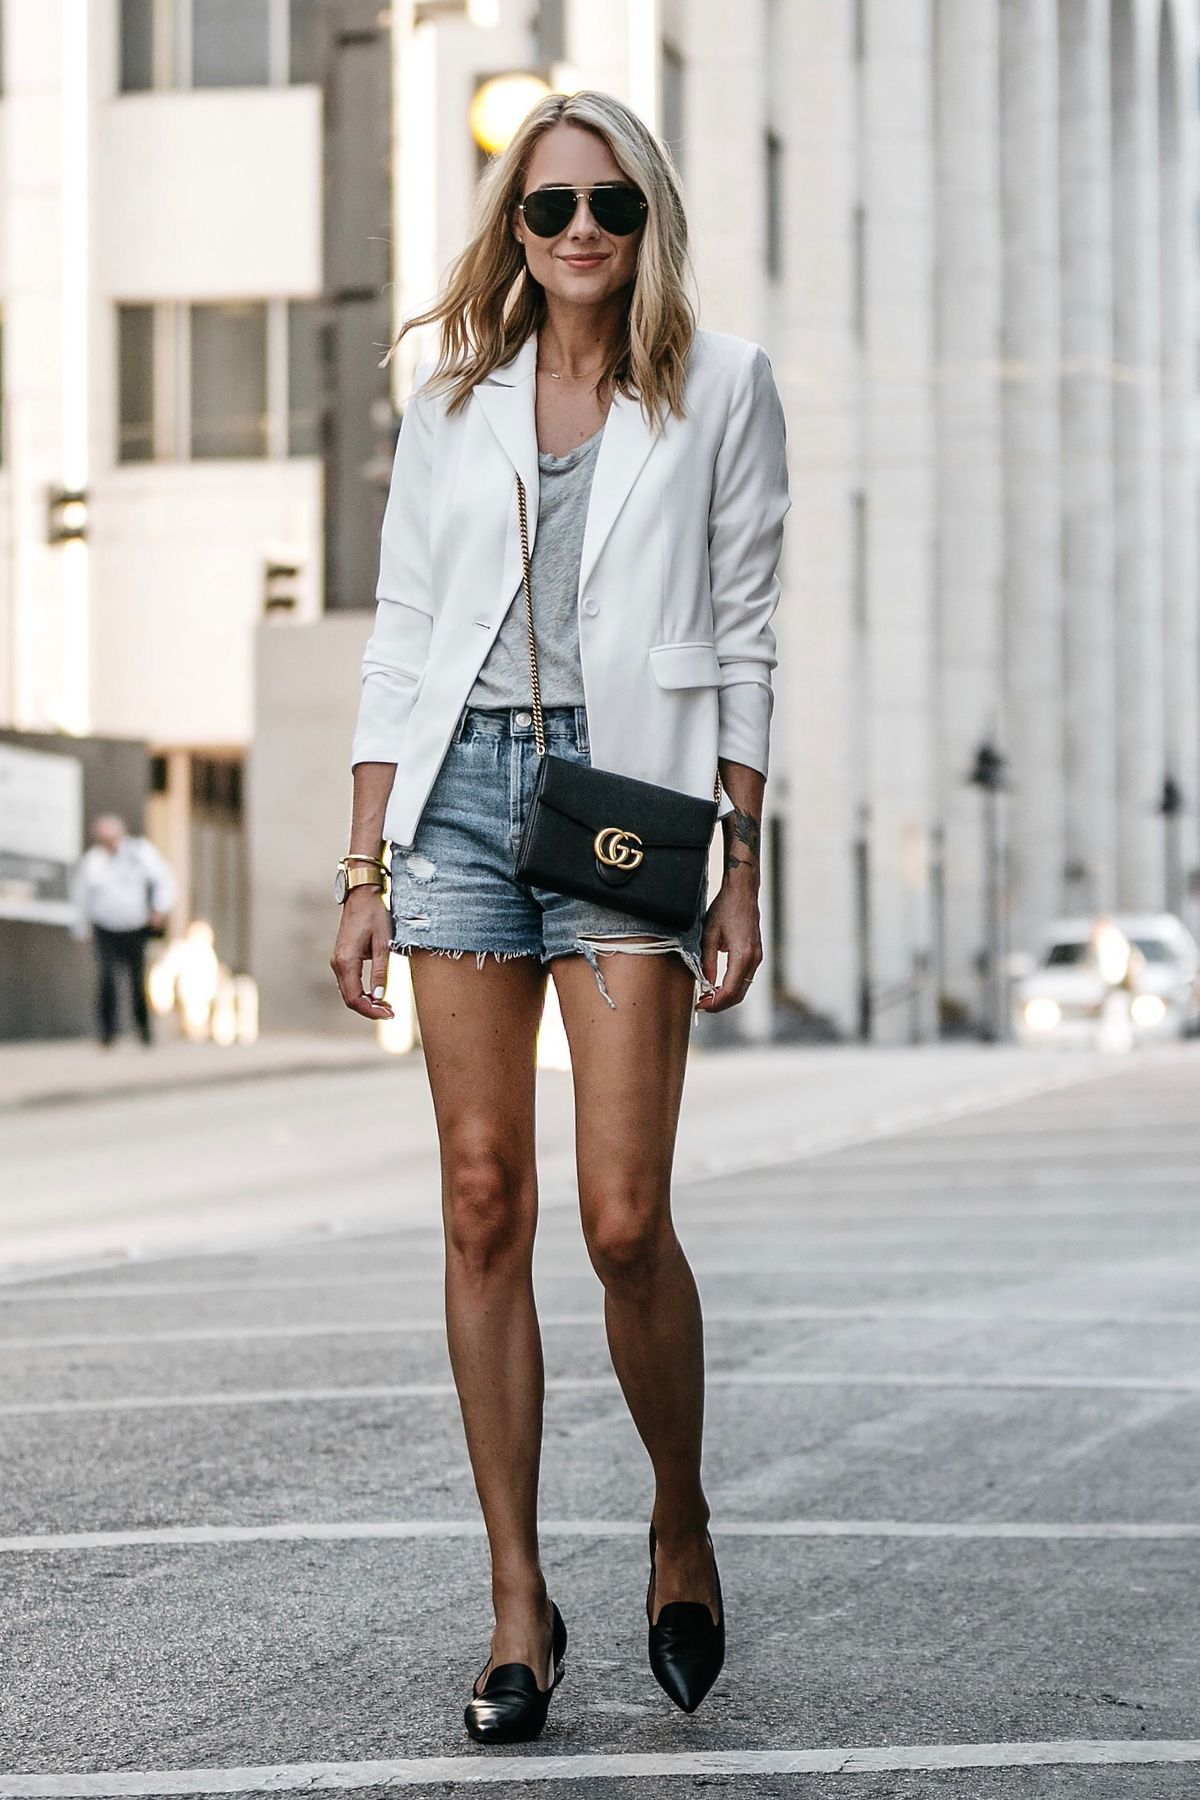 ca8c5d14401 Blonde Woman Wearing Nordstrom White Structured Blazer Everlane Grey Tshirt Topshop  Ripped Denim Shorts Outfit Gucci Marmont Handbag Black Loafers Fashion ...